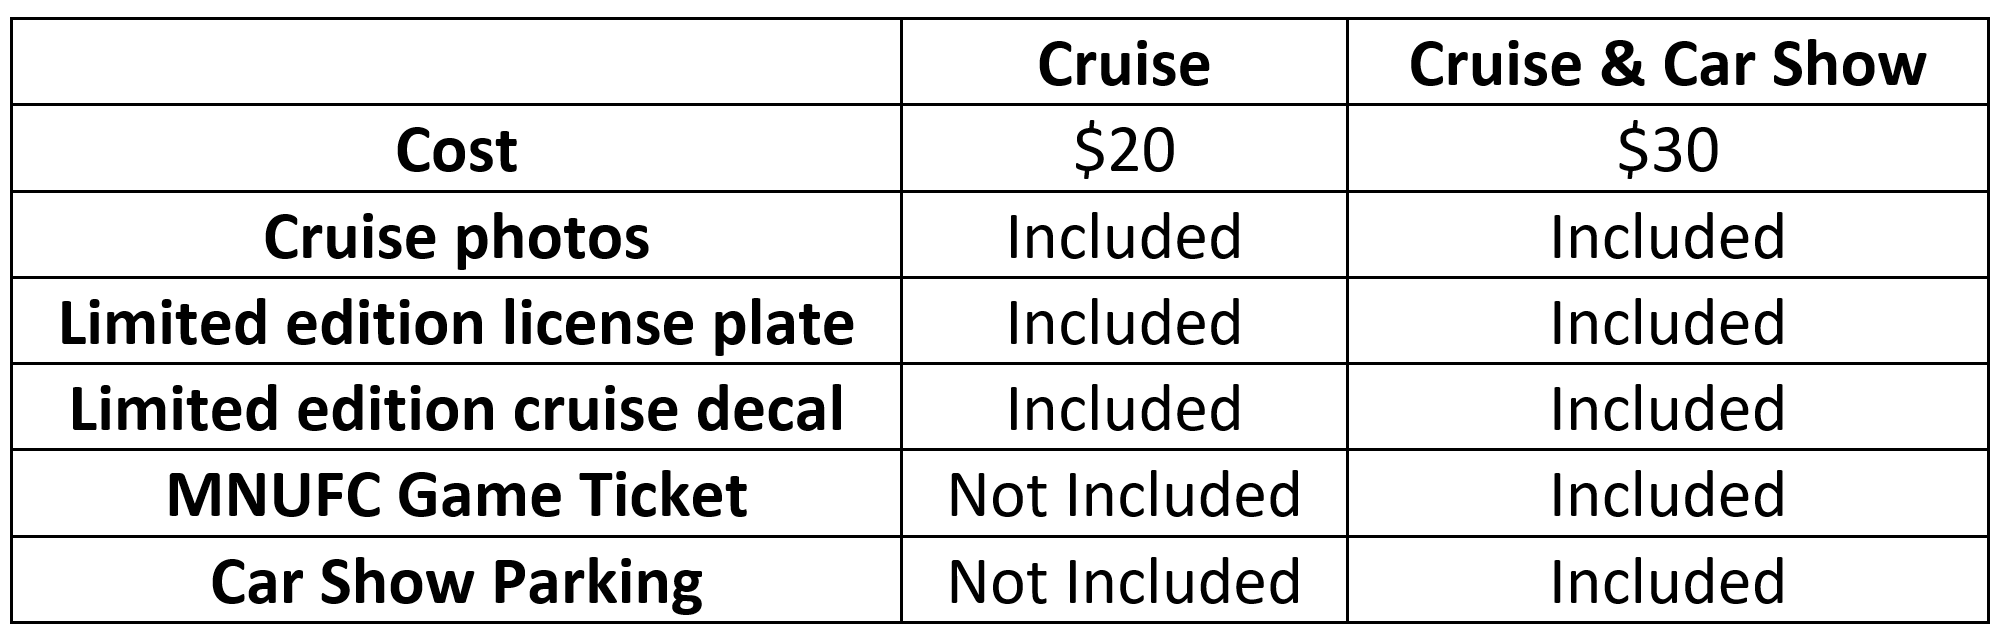 Paul Walker Cruise 2018 Price Chart.png